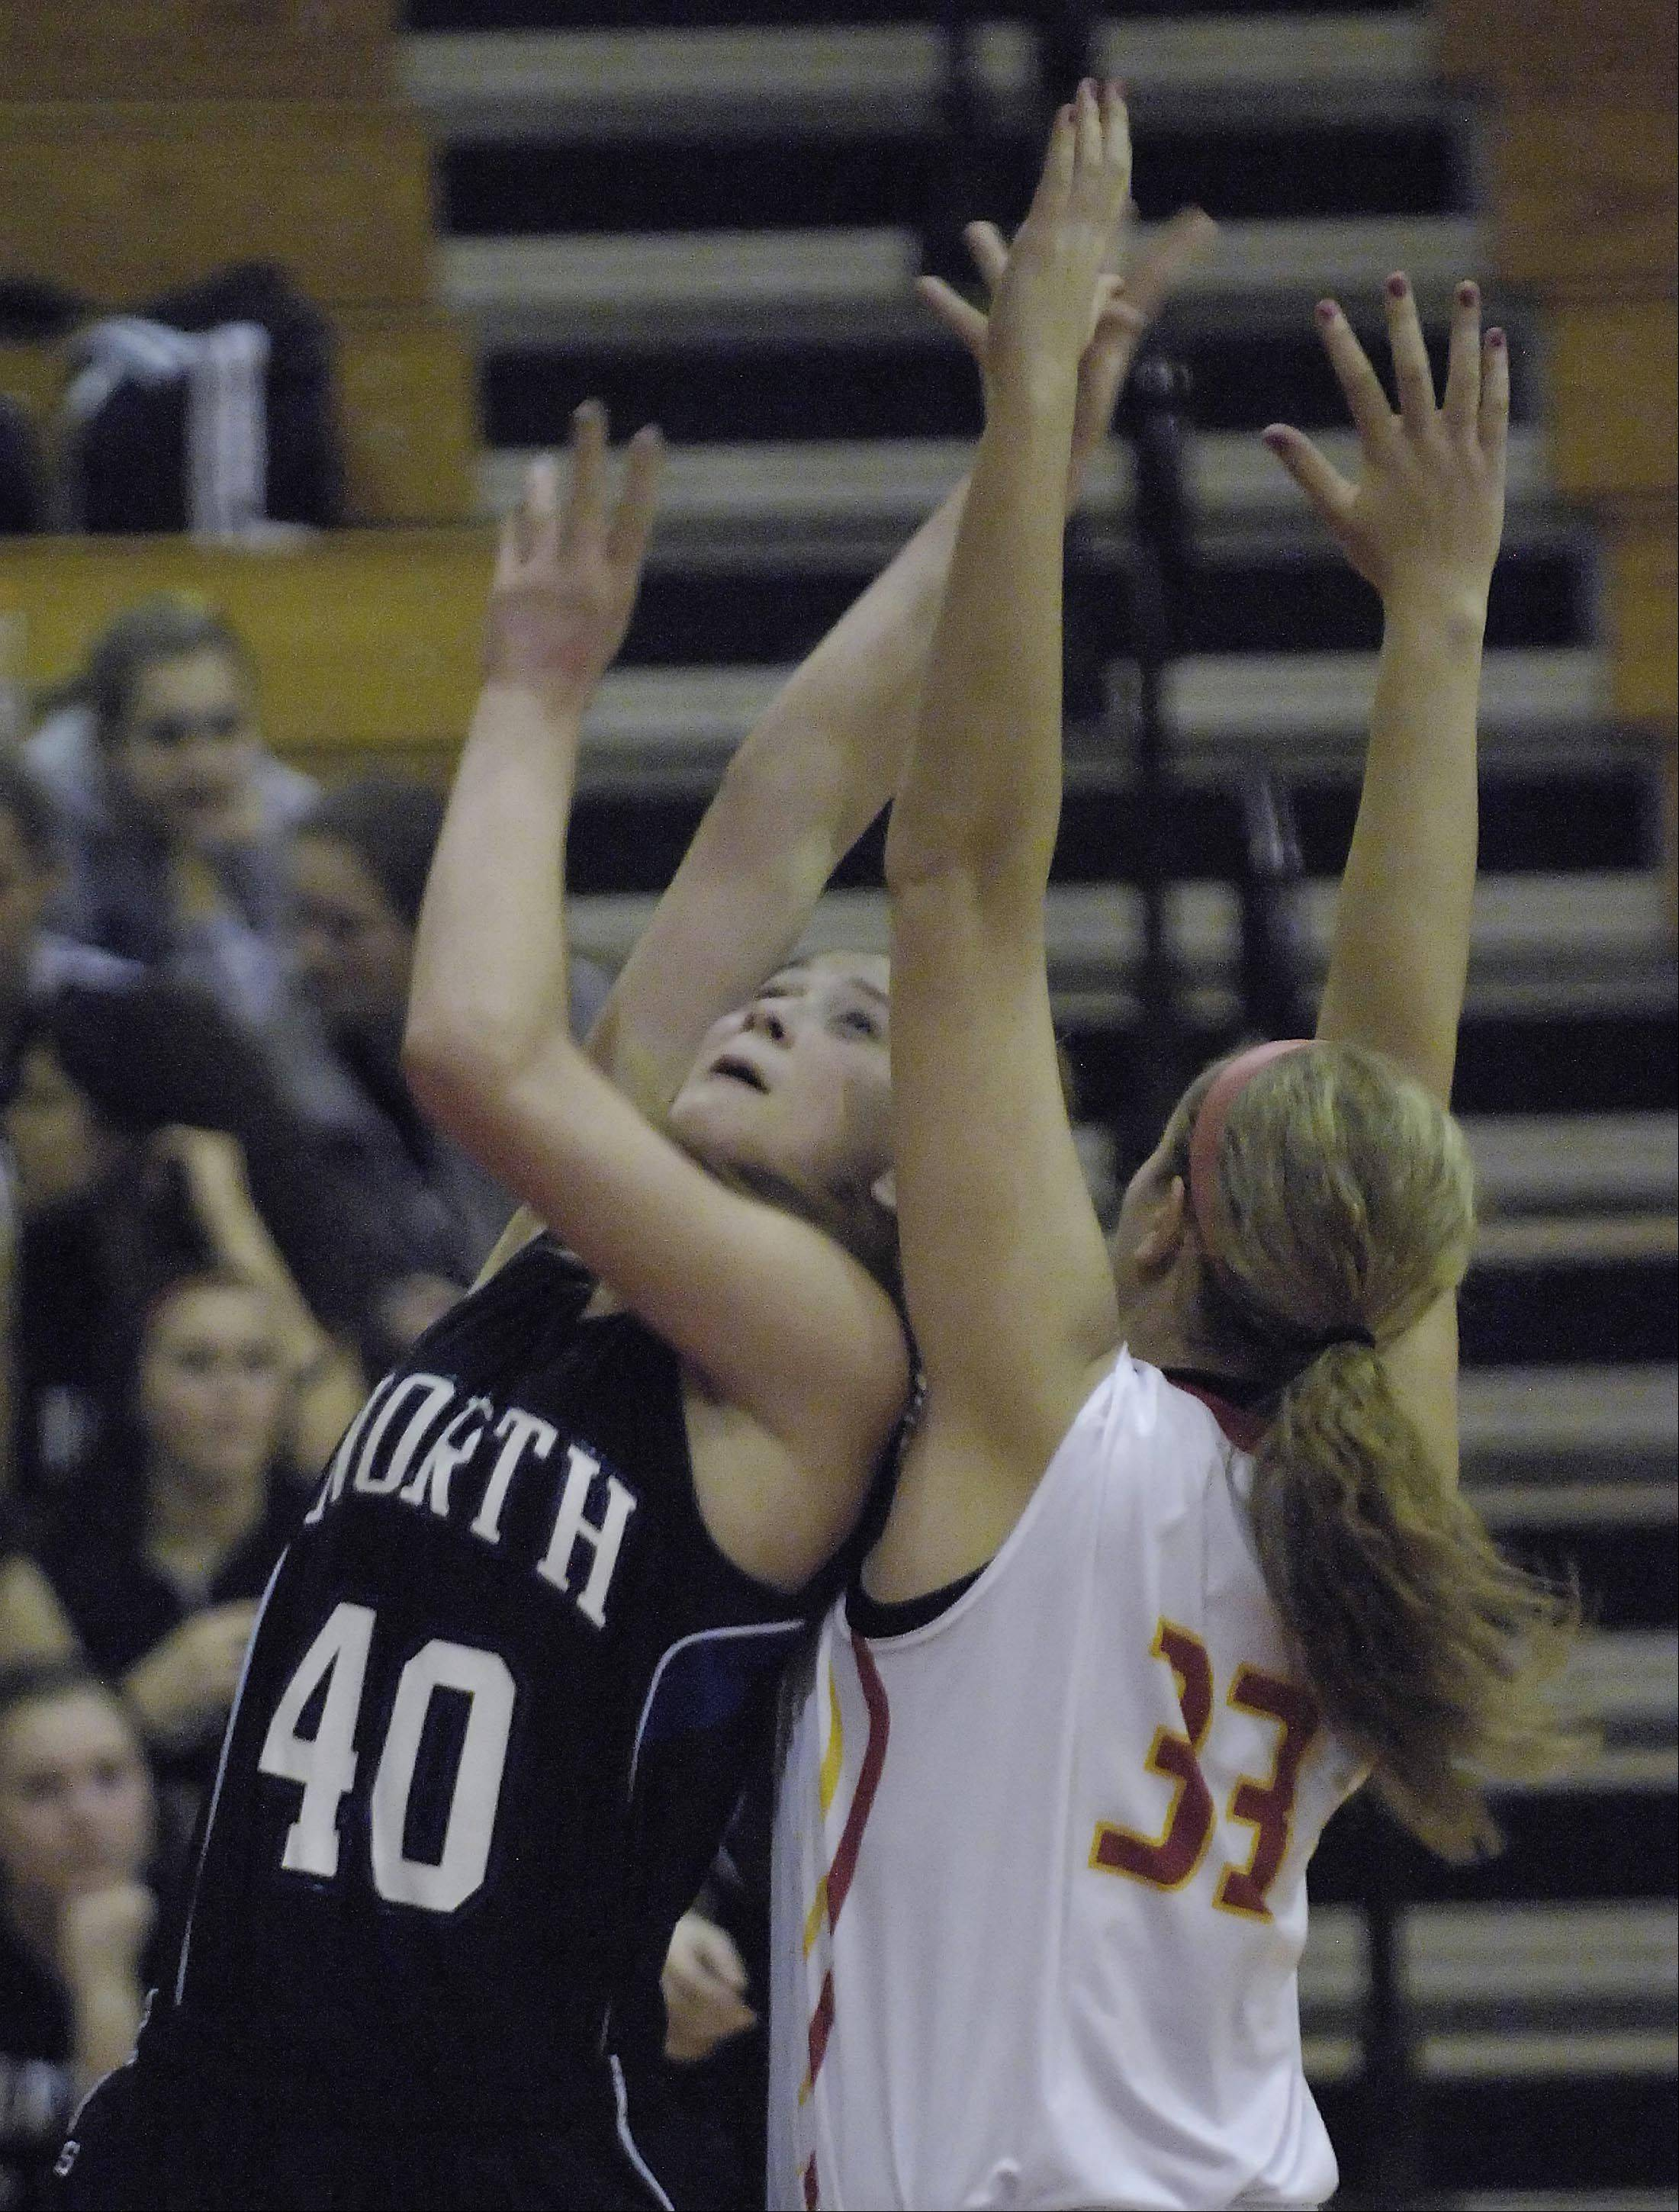 Images from the St. Charles North vs. Batavia girls basketball game Tuesday, November 27, 2012.